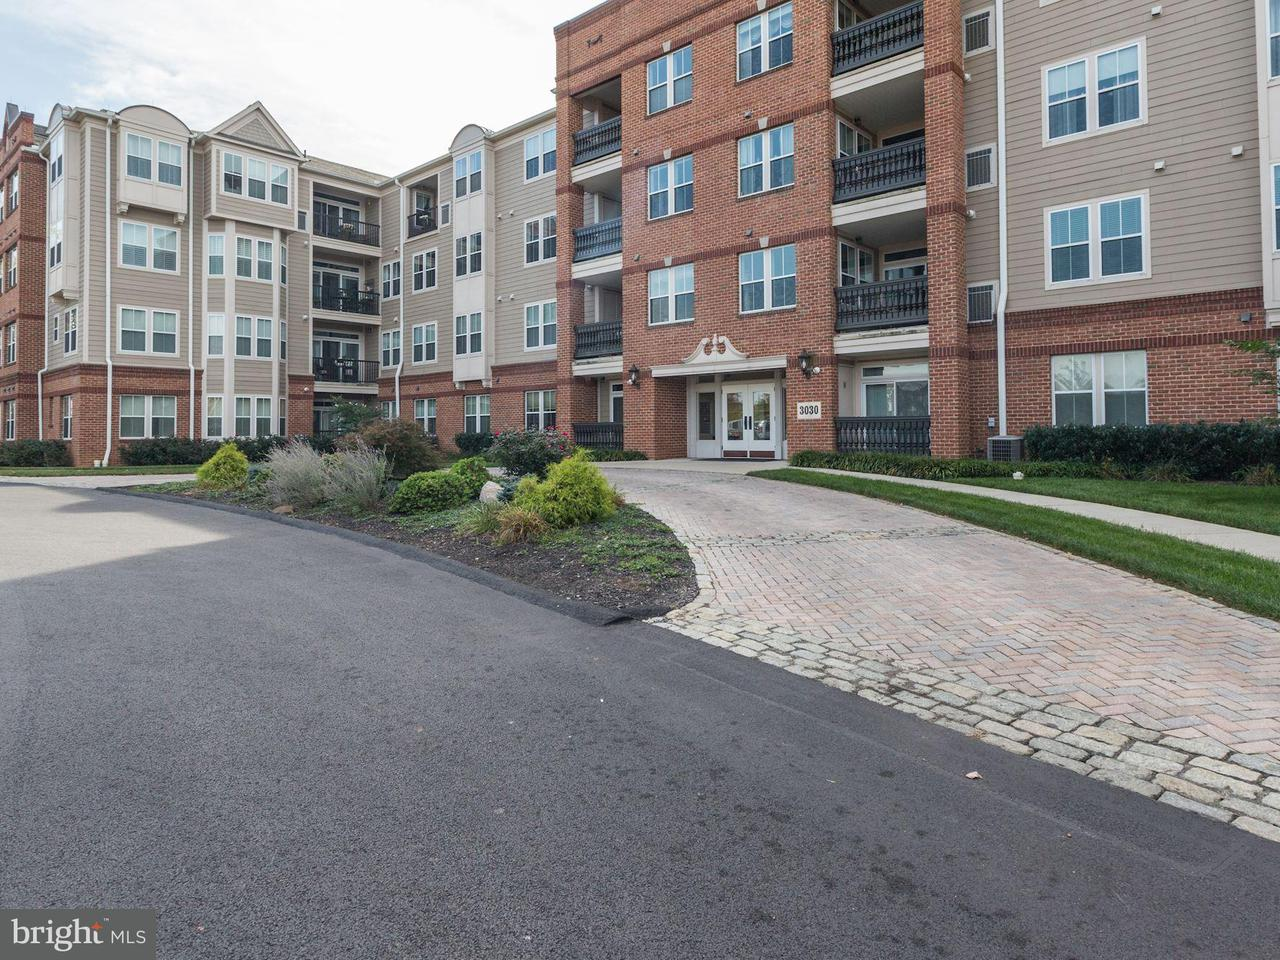 Additional photo for property listing at 3030 Mill Island Pkwy #410 3030 Mill Island Pkwy #410 Frederick, Мэриленд 21701 Соединенные Штаты